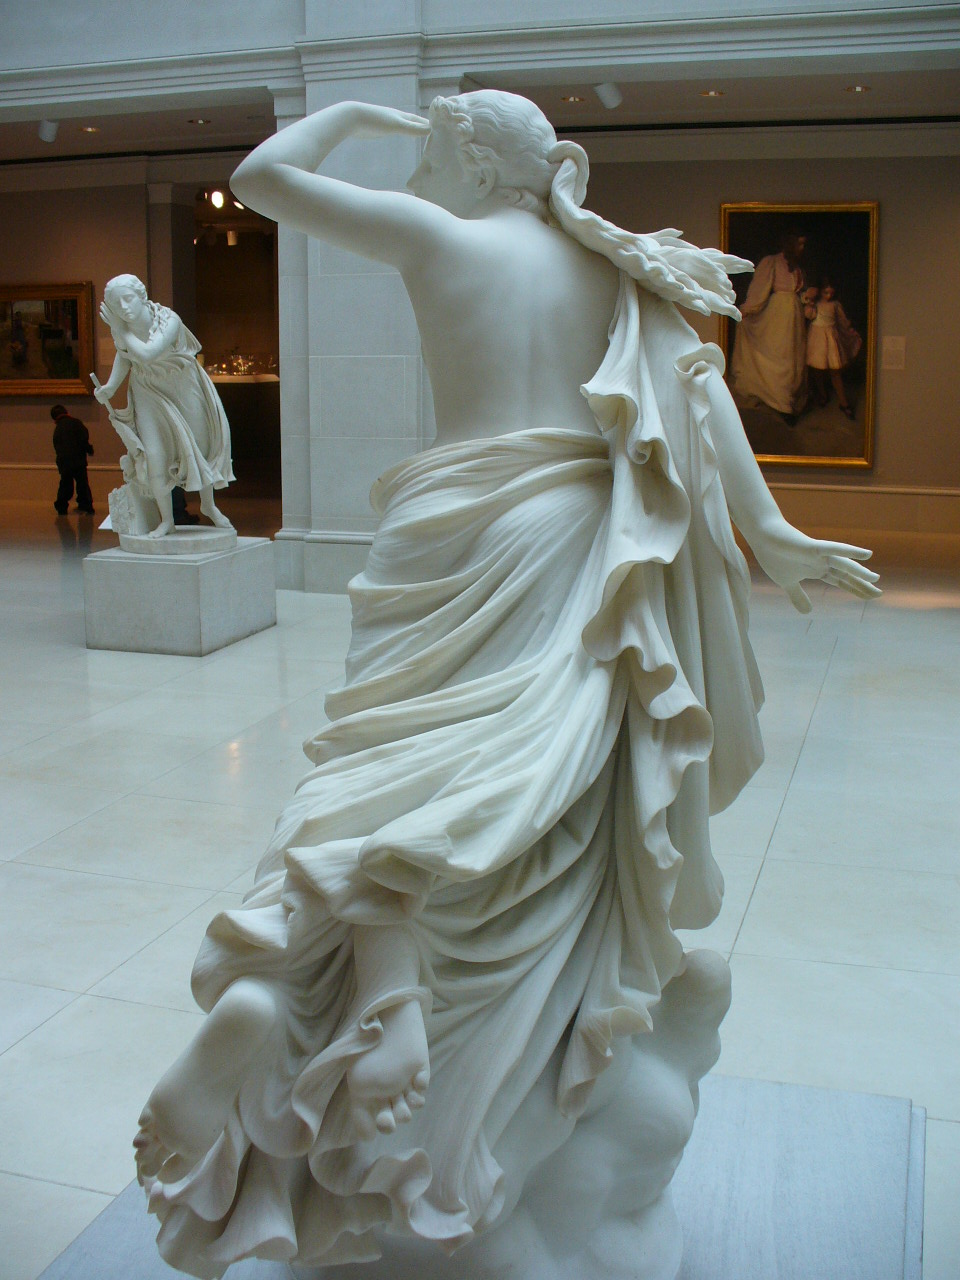 The Lost Pleiade by Randolph (sculpture, rear view)